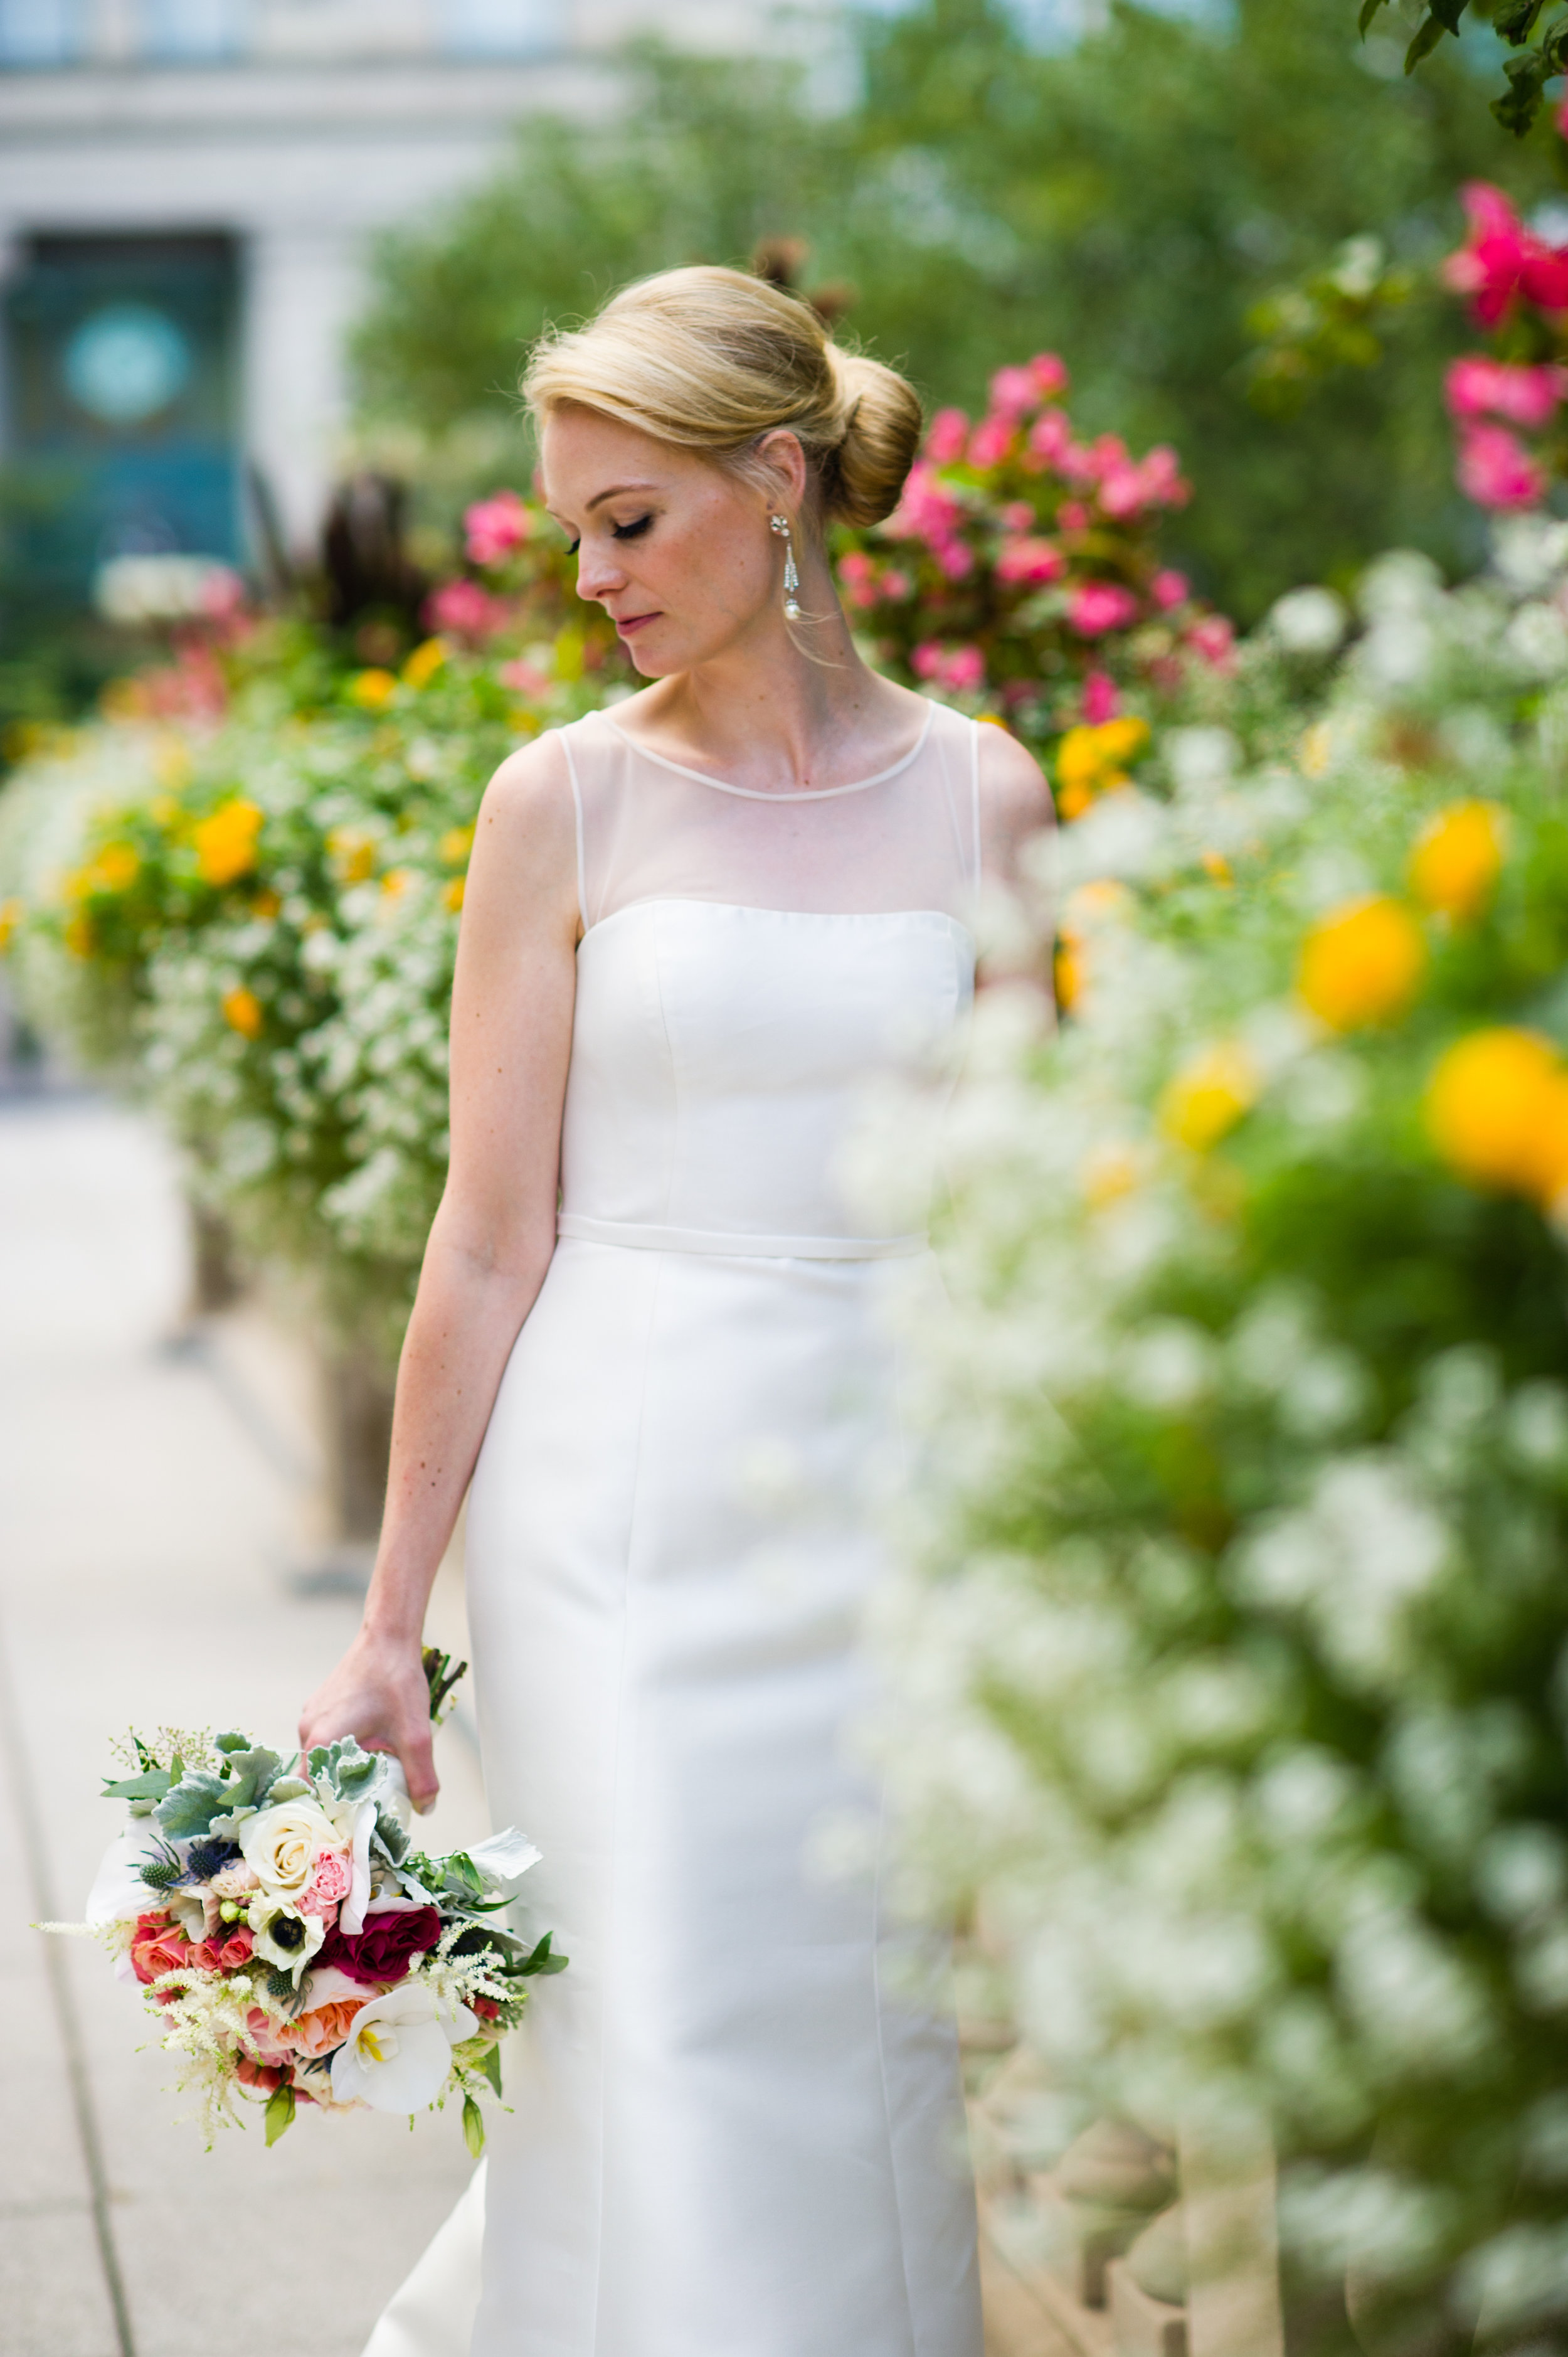 Bridal Portraits in Chicago summer